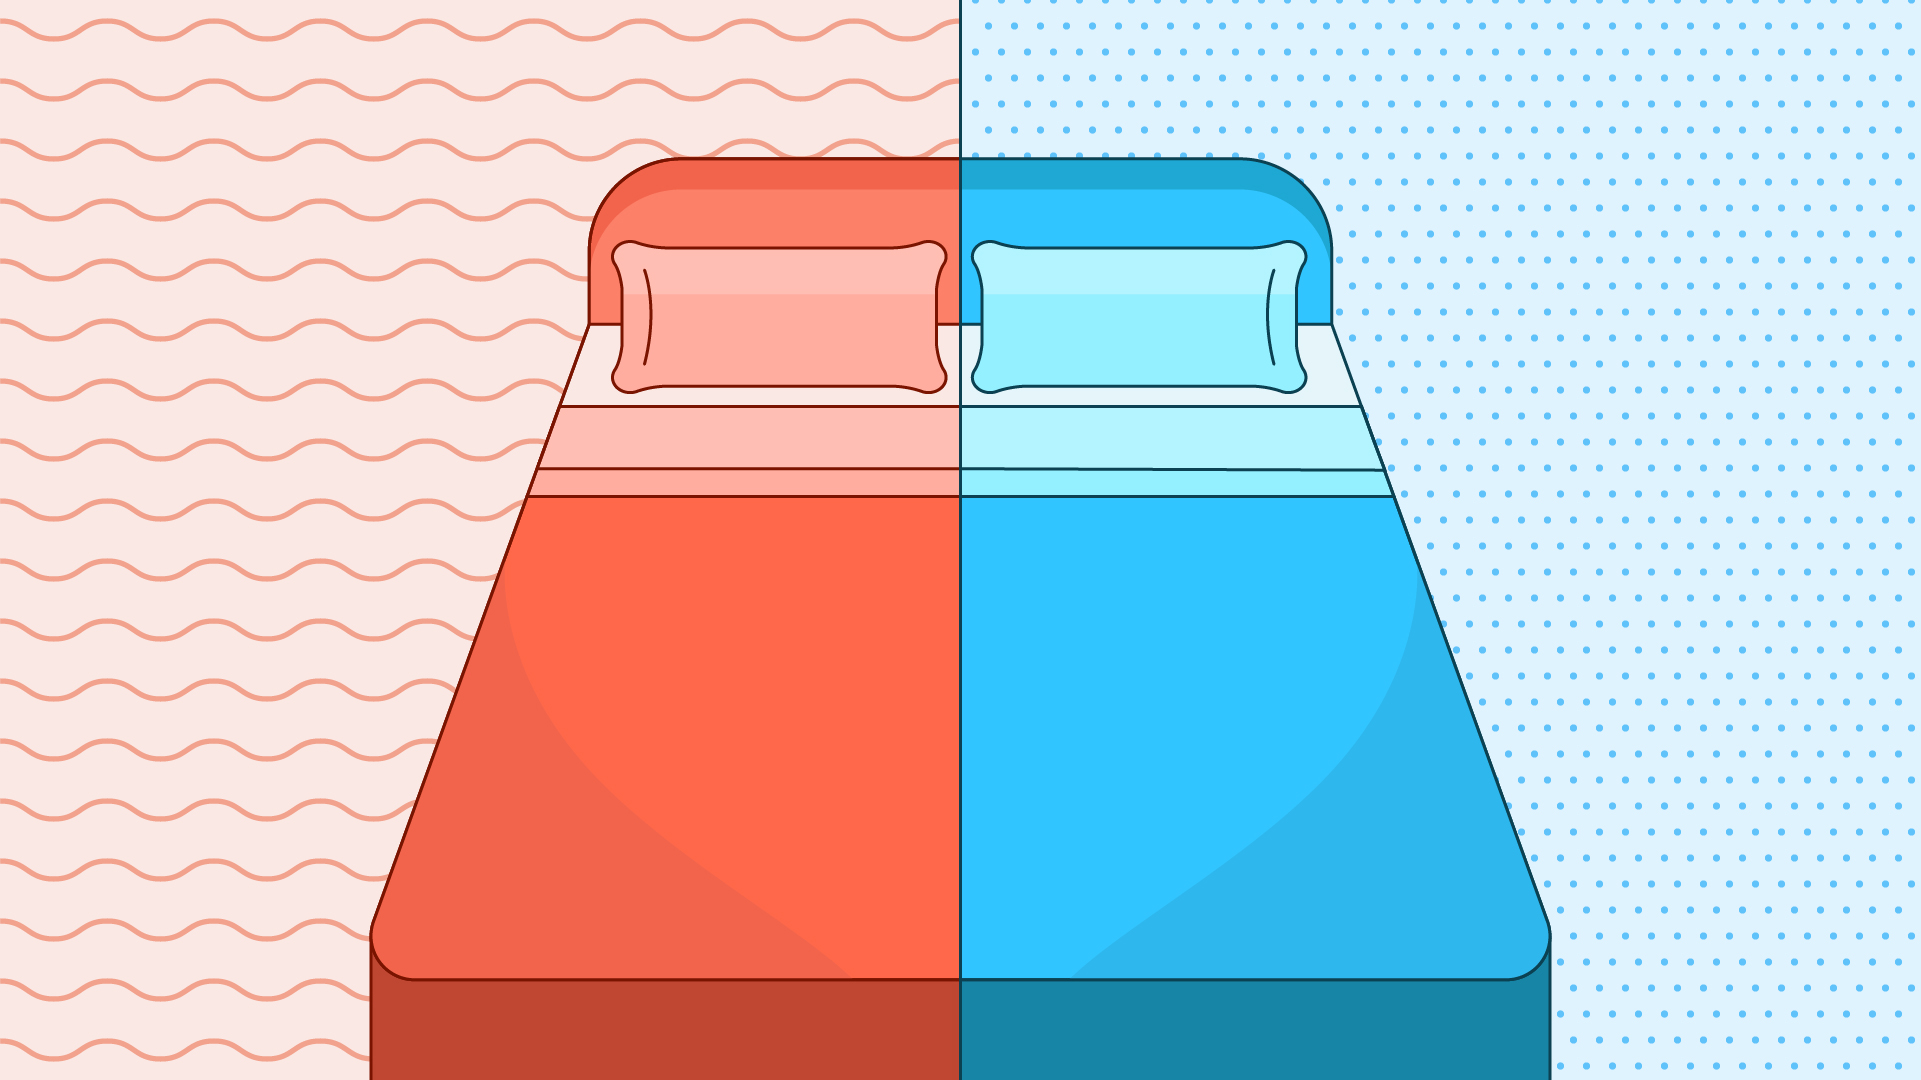 Bed Too Hot or Too Cold? Find a Solution